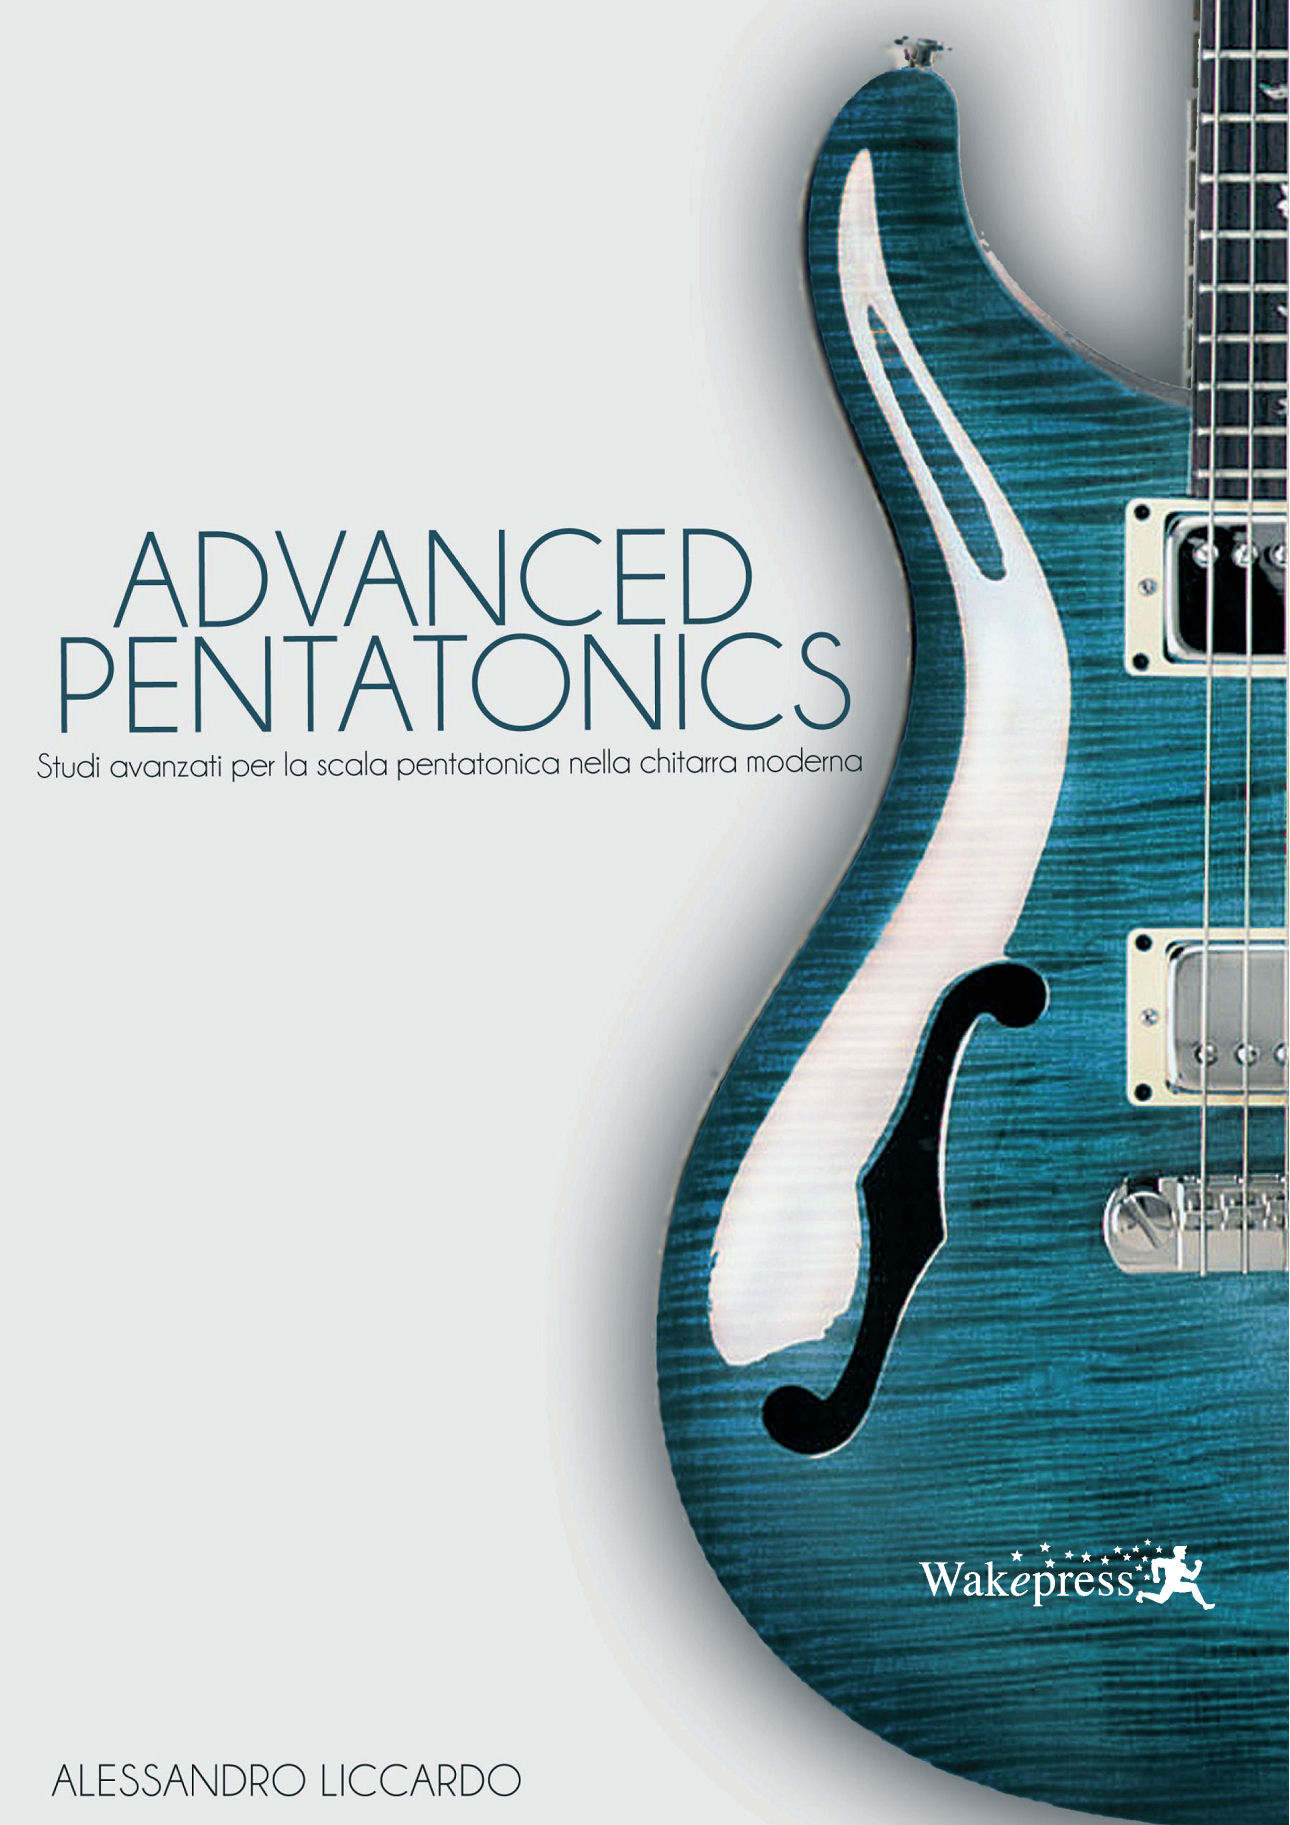 Copertina di ADVANCED PENTATONICS